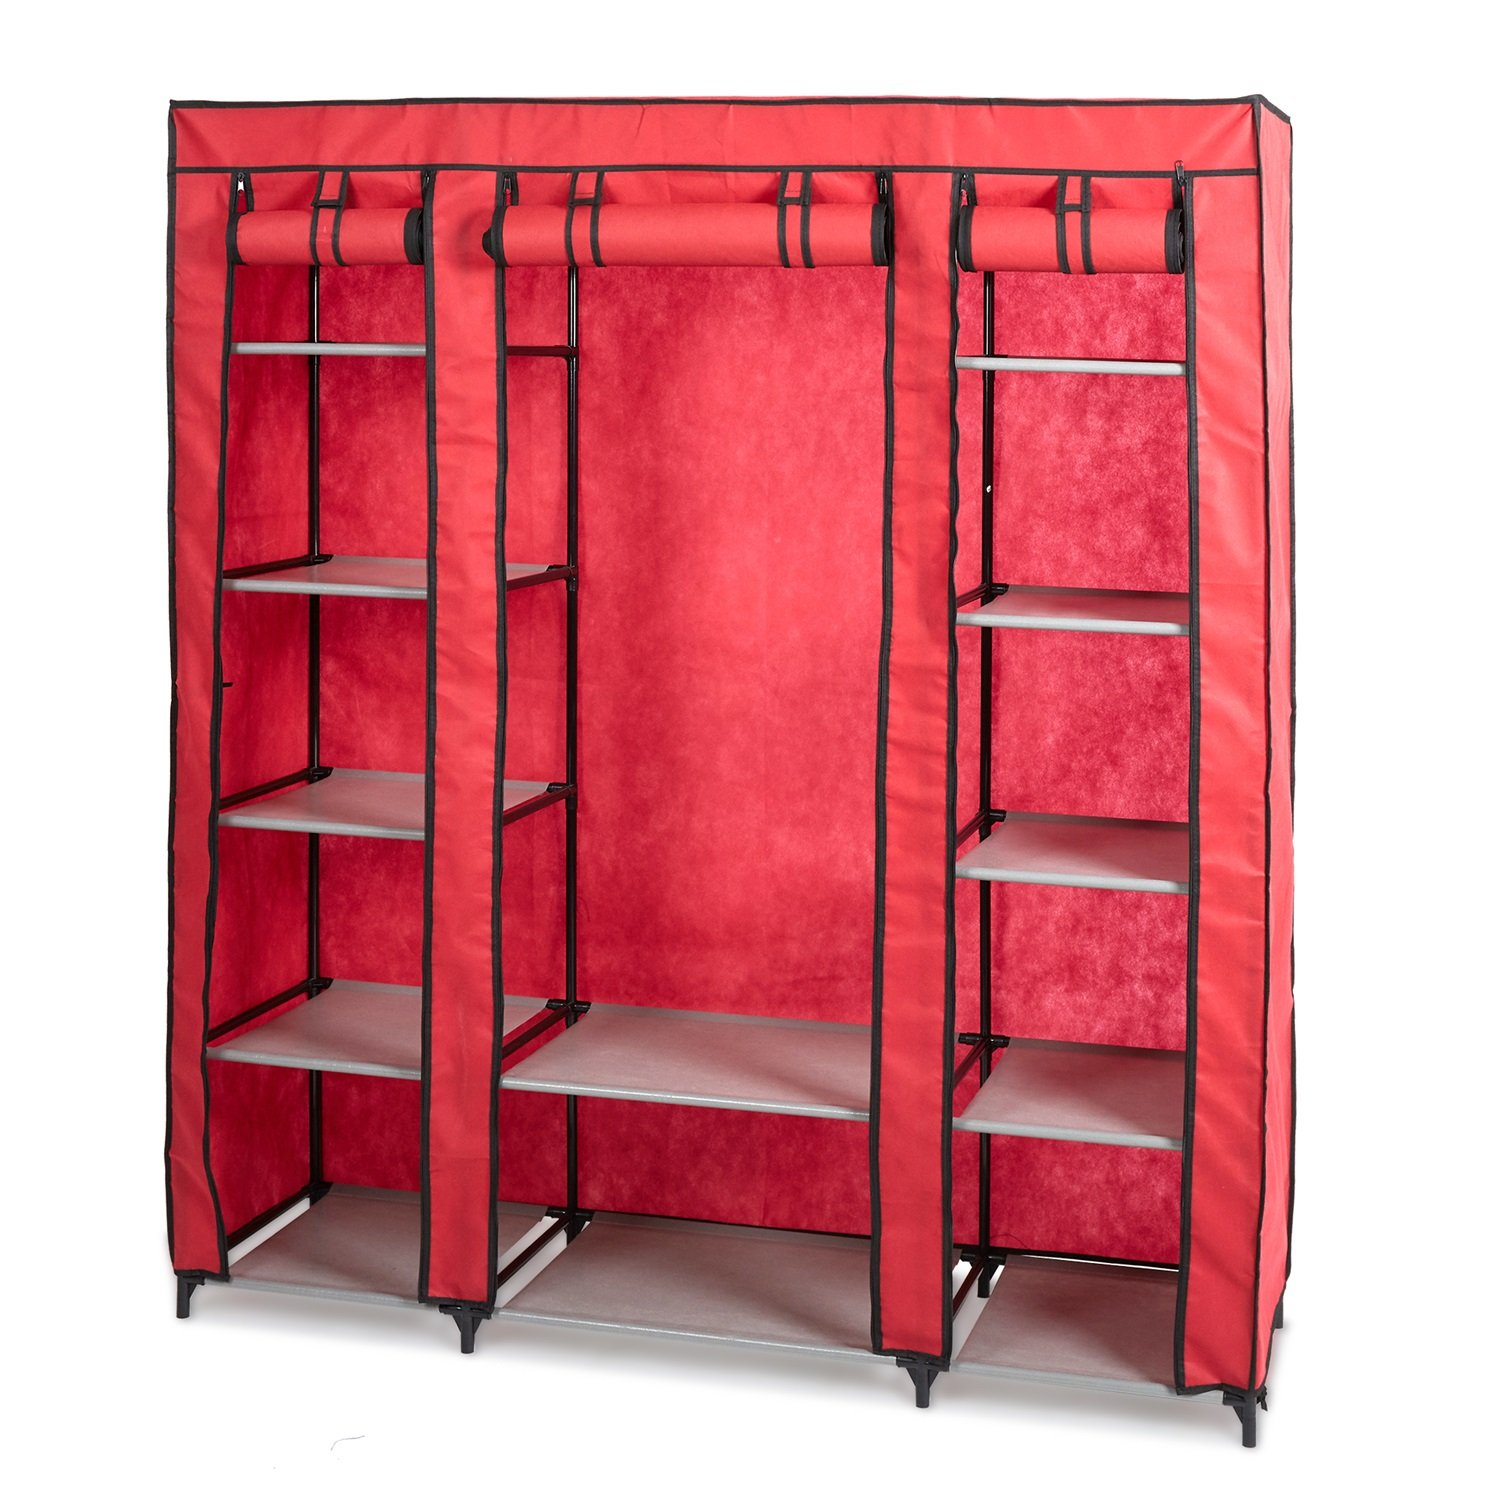 KARMAS PRODUCT 5-Tier Portable Wardrobe Clothes Closet with Non-woven Fabric and Steel Tube,Free Standing and Space Saving Closet Storage, Quick and Easy Assembly (red)